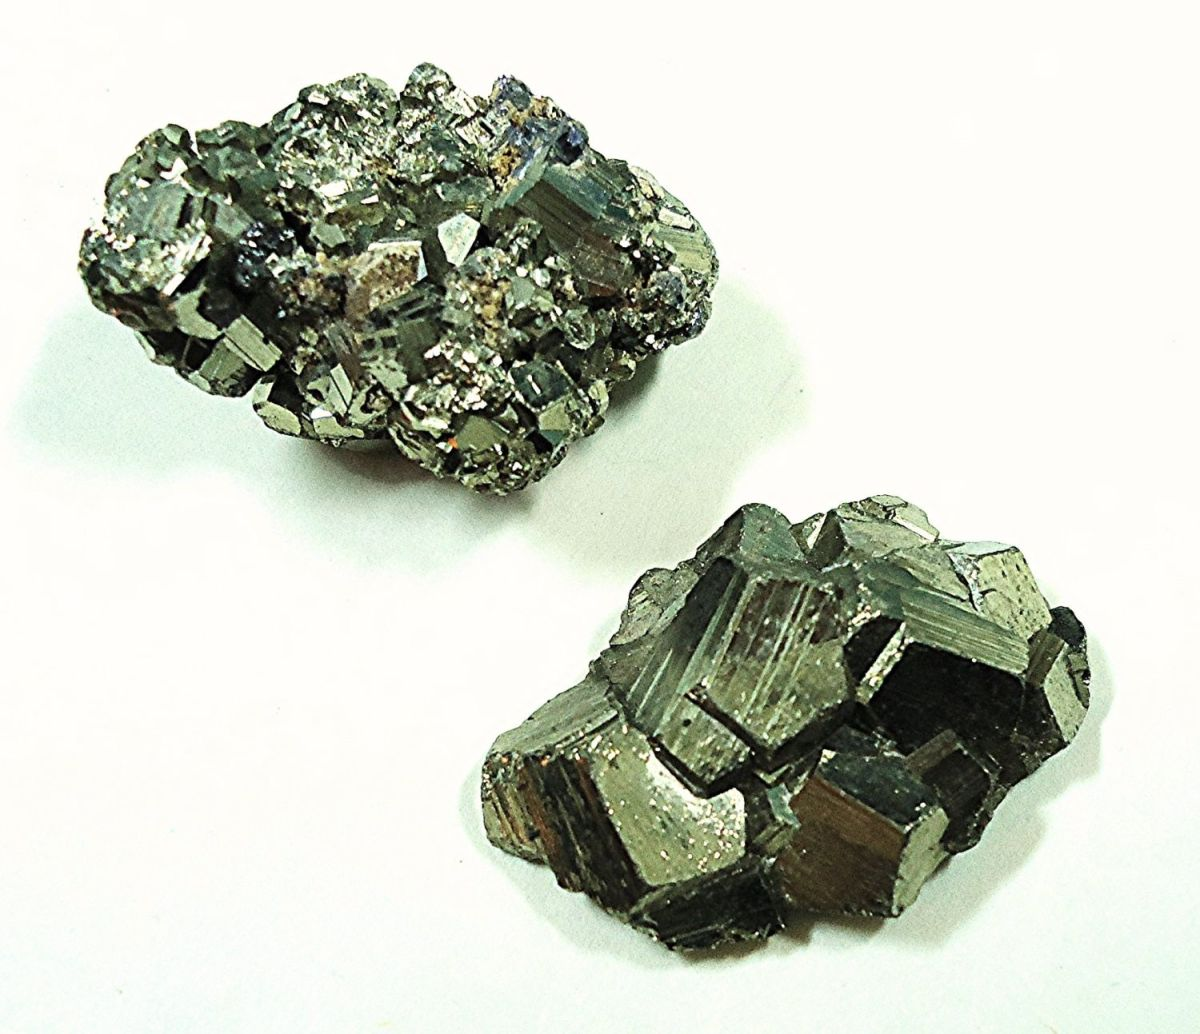 Iron pyrite is also known as fool's gold.